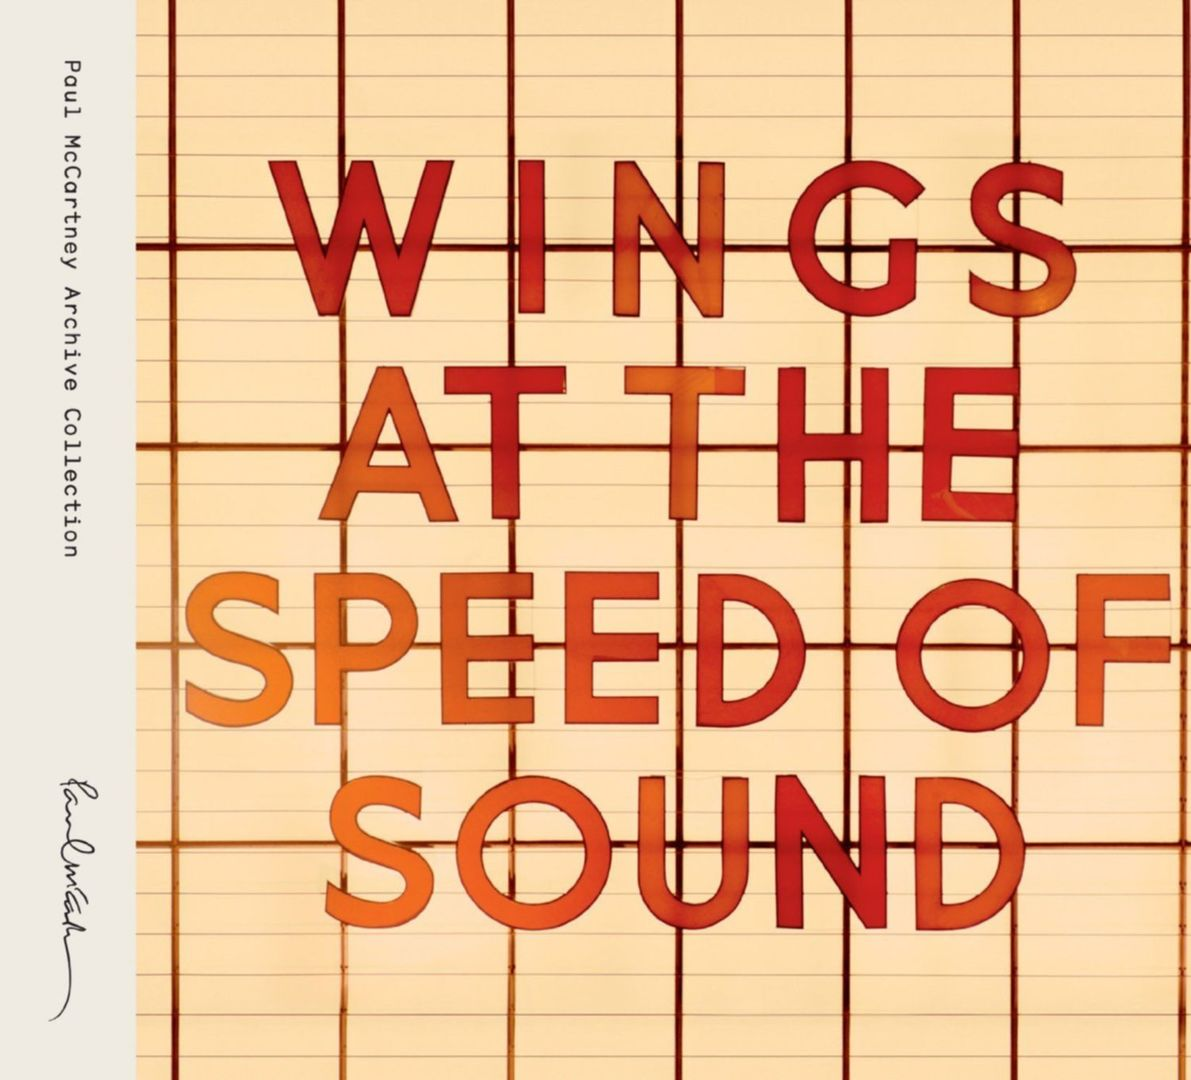 Wunderbar: Wings - WINGS AT THE SPEED OF SOUND (1976)